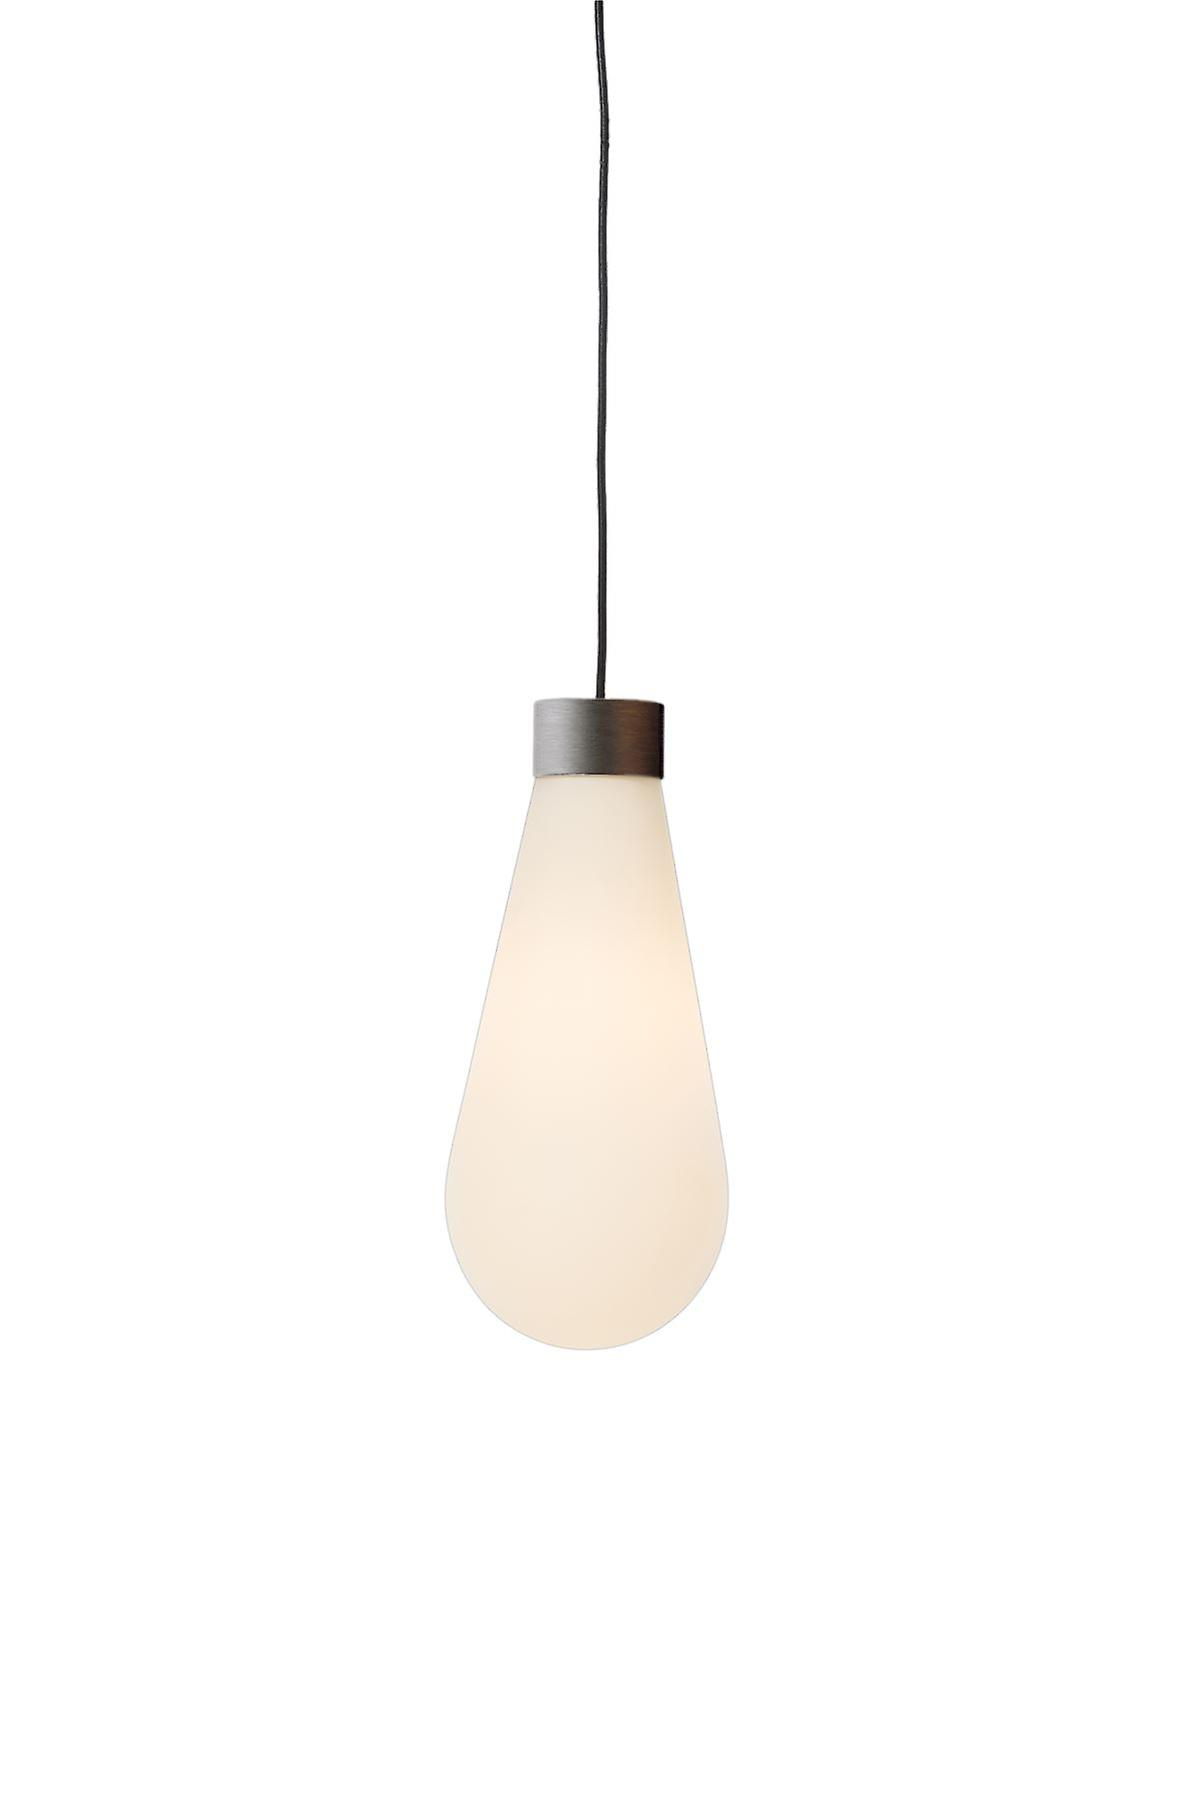 Herstal - Tear LED Pendant Light Graphite, blanc Finish 6075000120